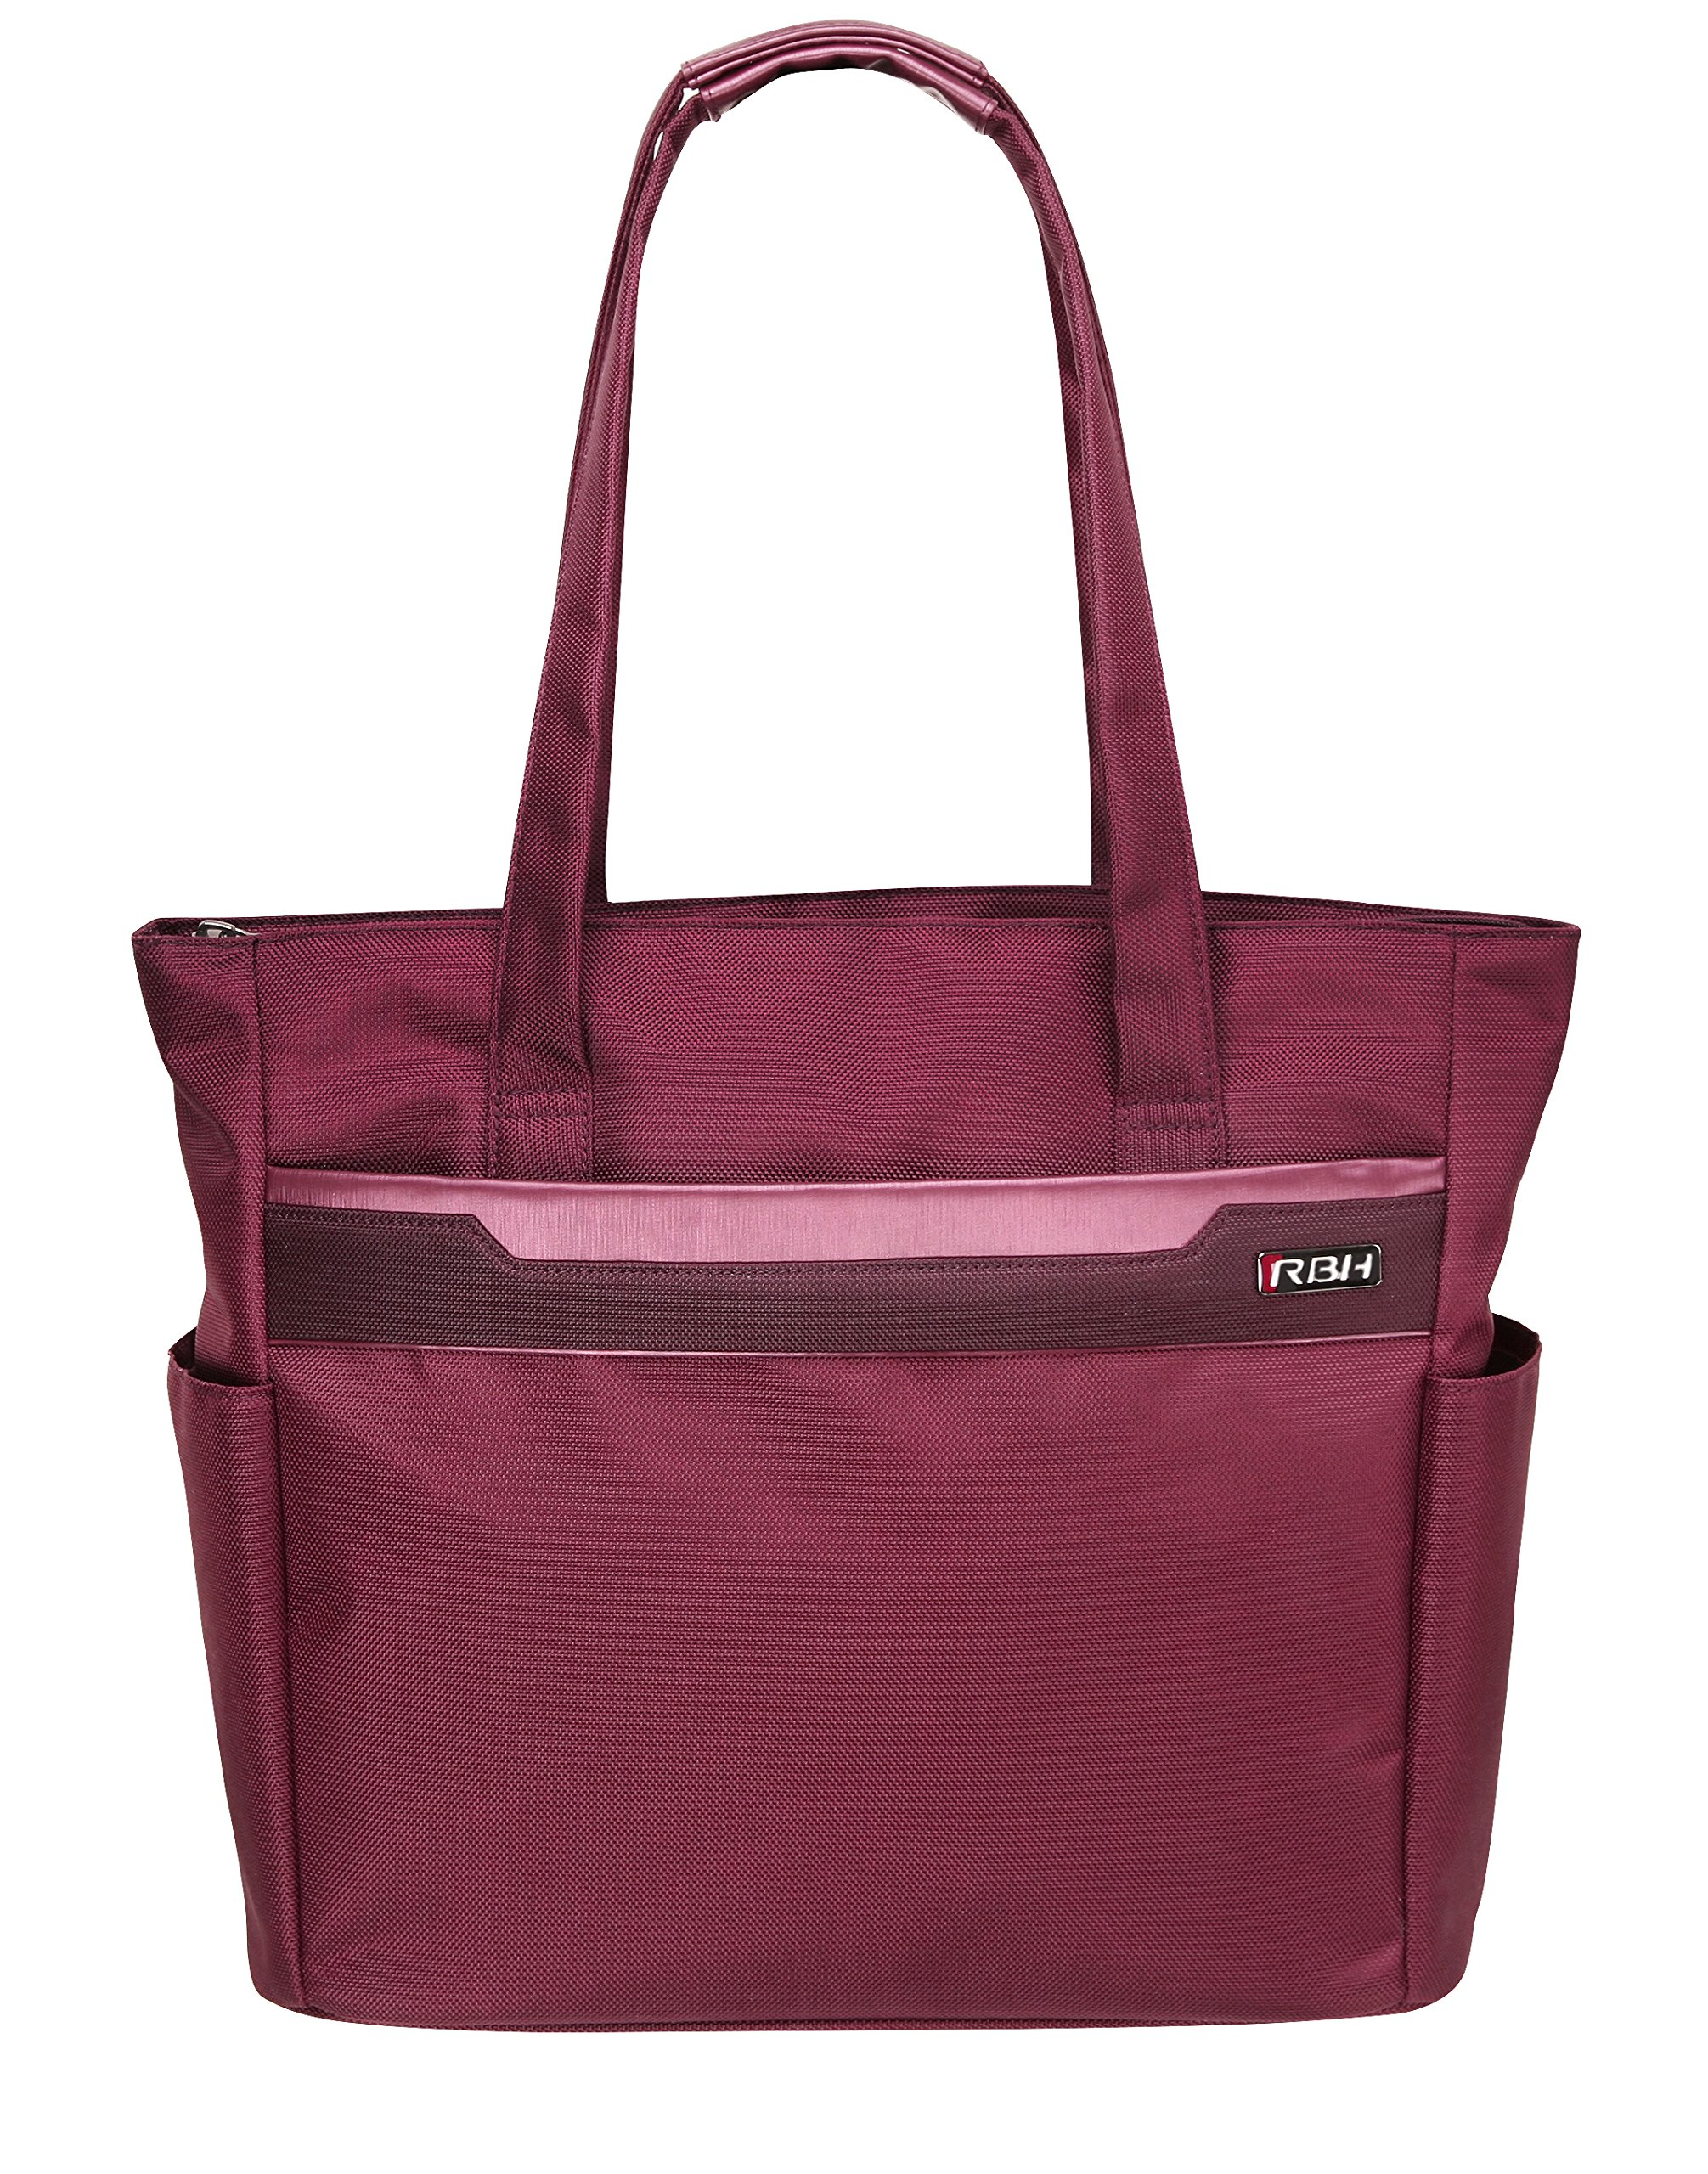 Ricardo Beverly Hills Bel Aire 18-Inch Shopper Tote, Wine, One Size